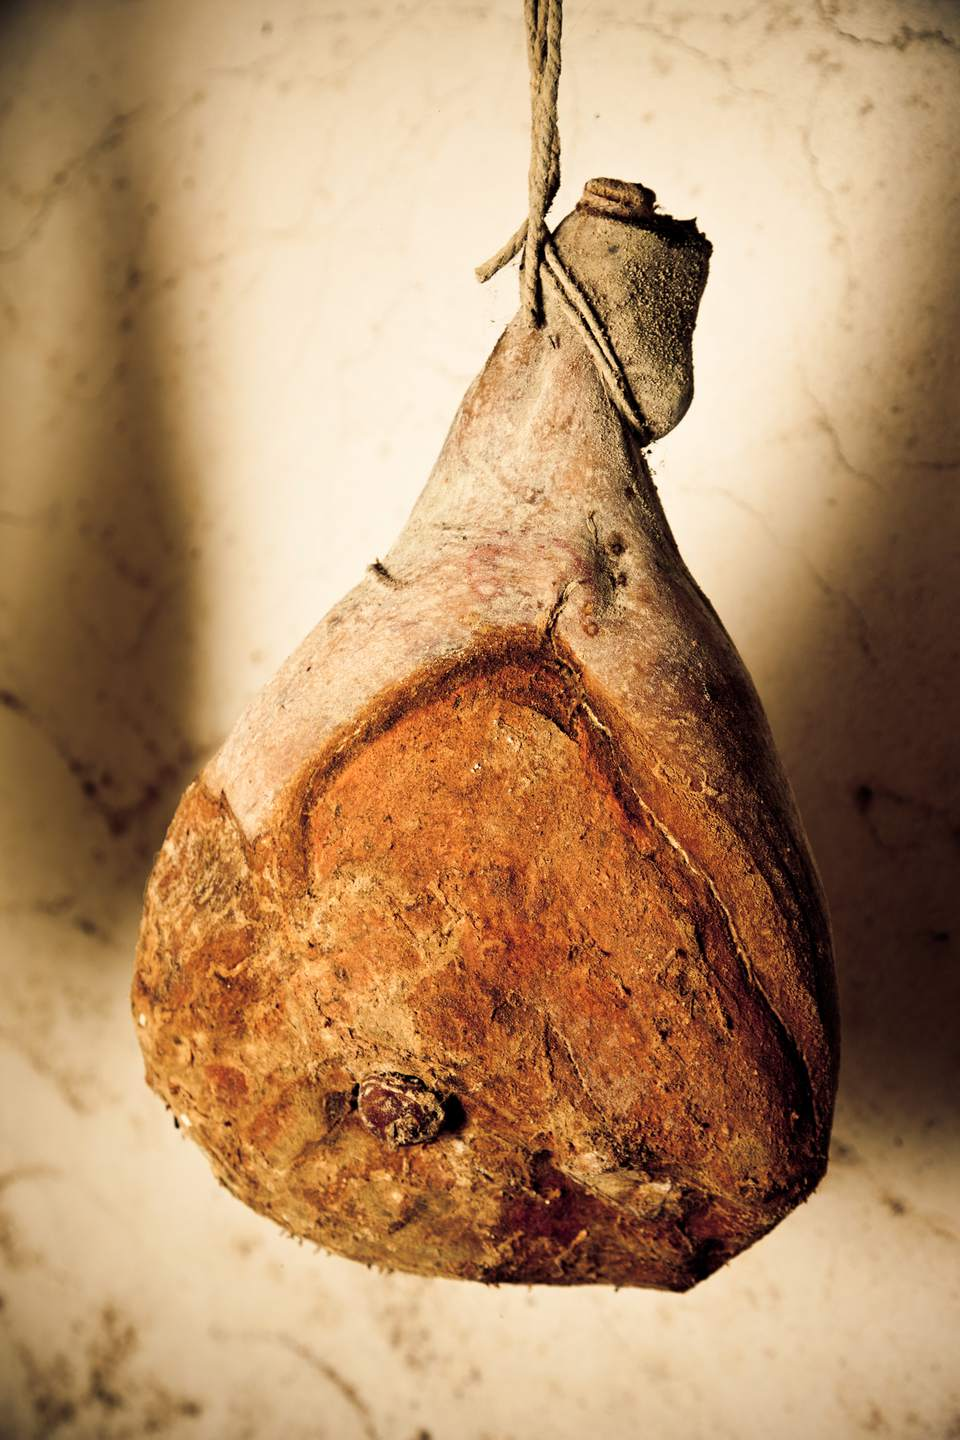 A prosciutto hanging to cure in a basement